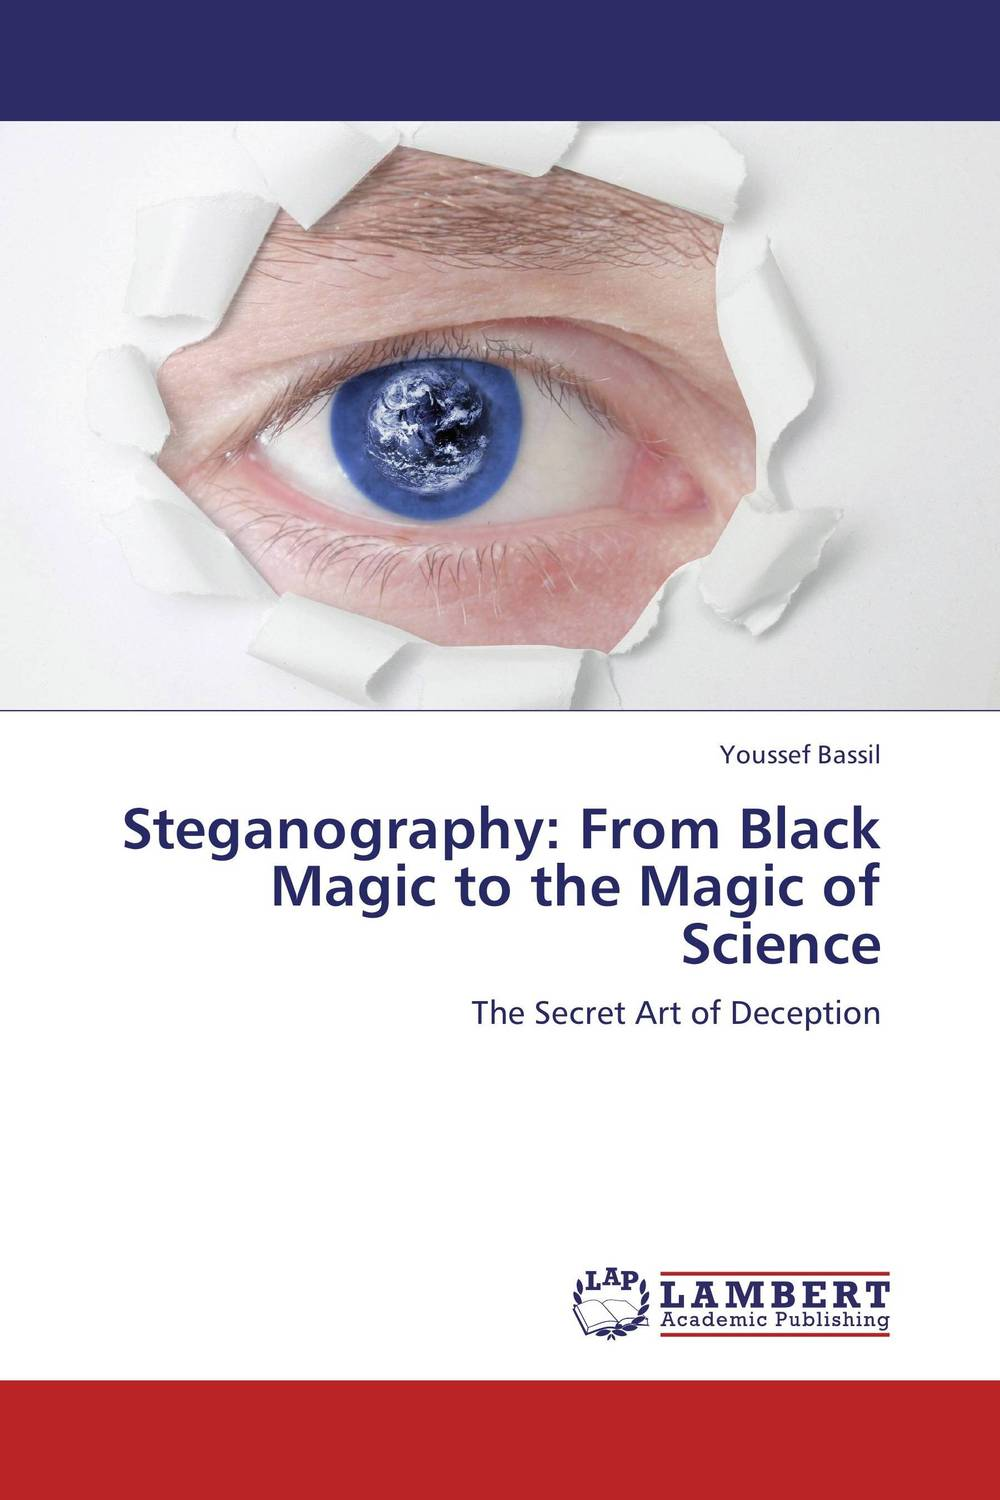 где купить Steganography: From Black Magic to the Magic of Science по лучшей цене